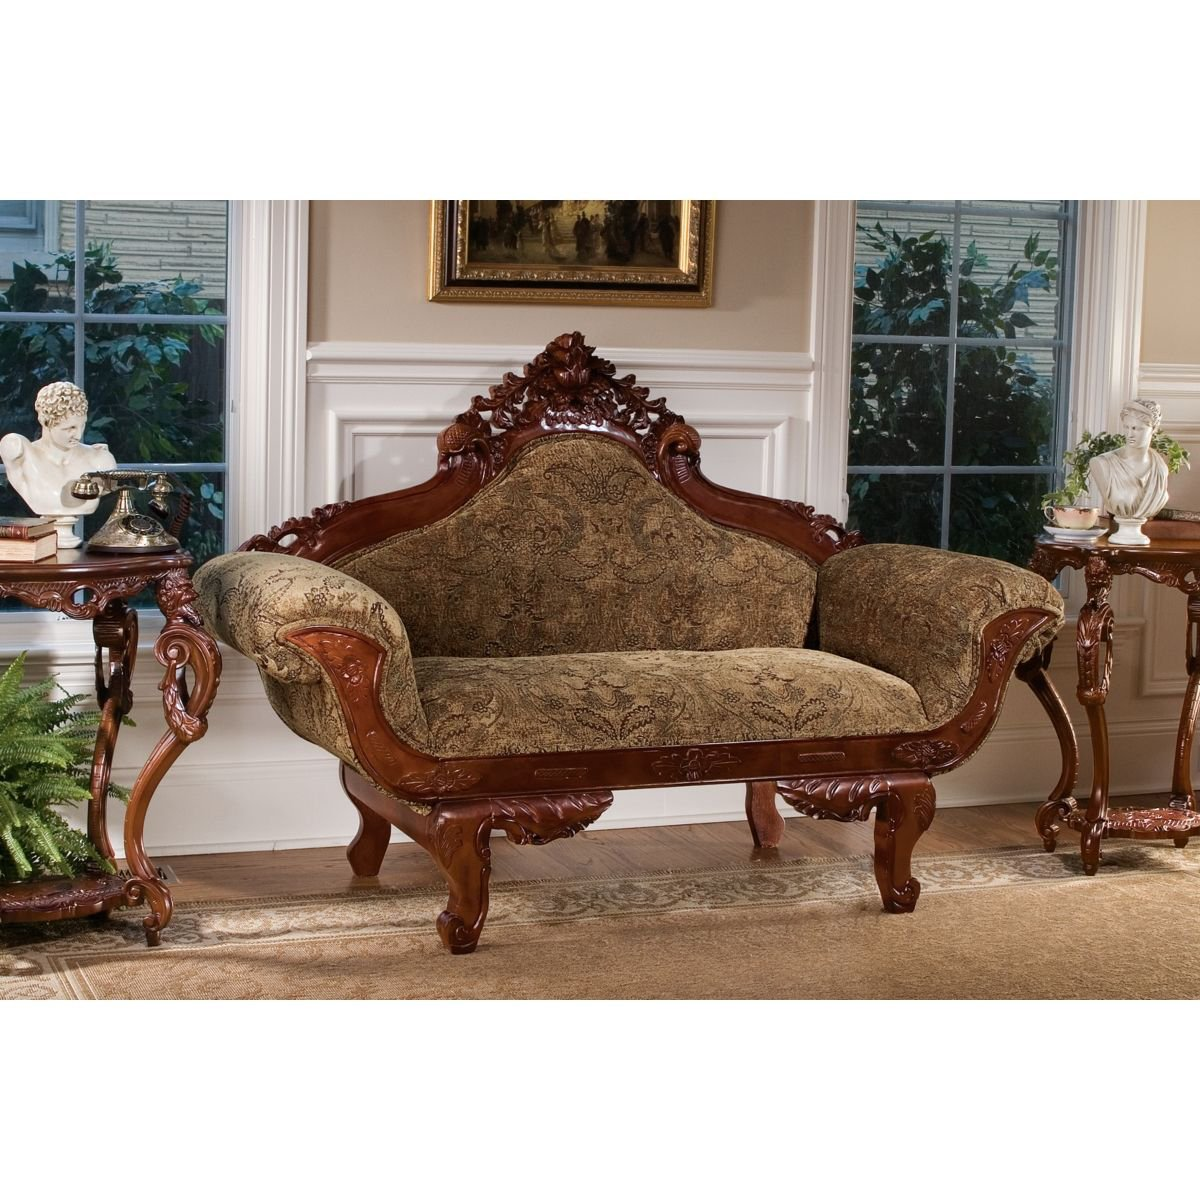 Amazon.com: Design Toscano Beauchamp Victorian Parlor Settee: Kitchen U0026  Dining